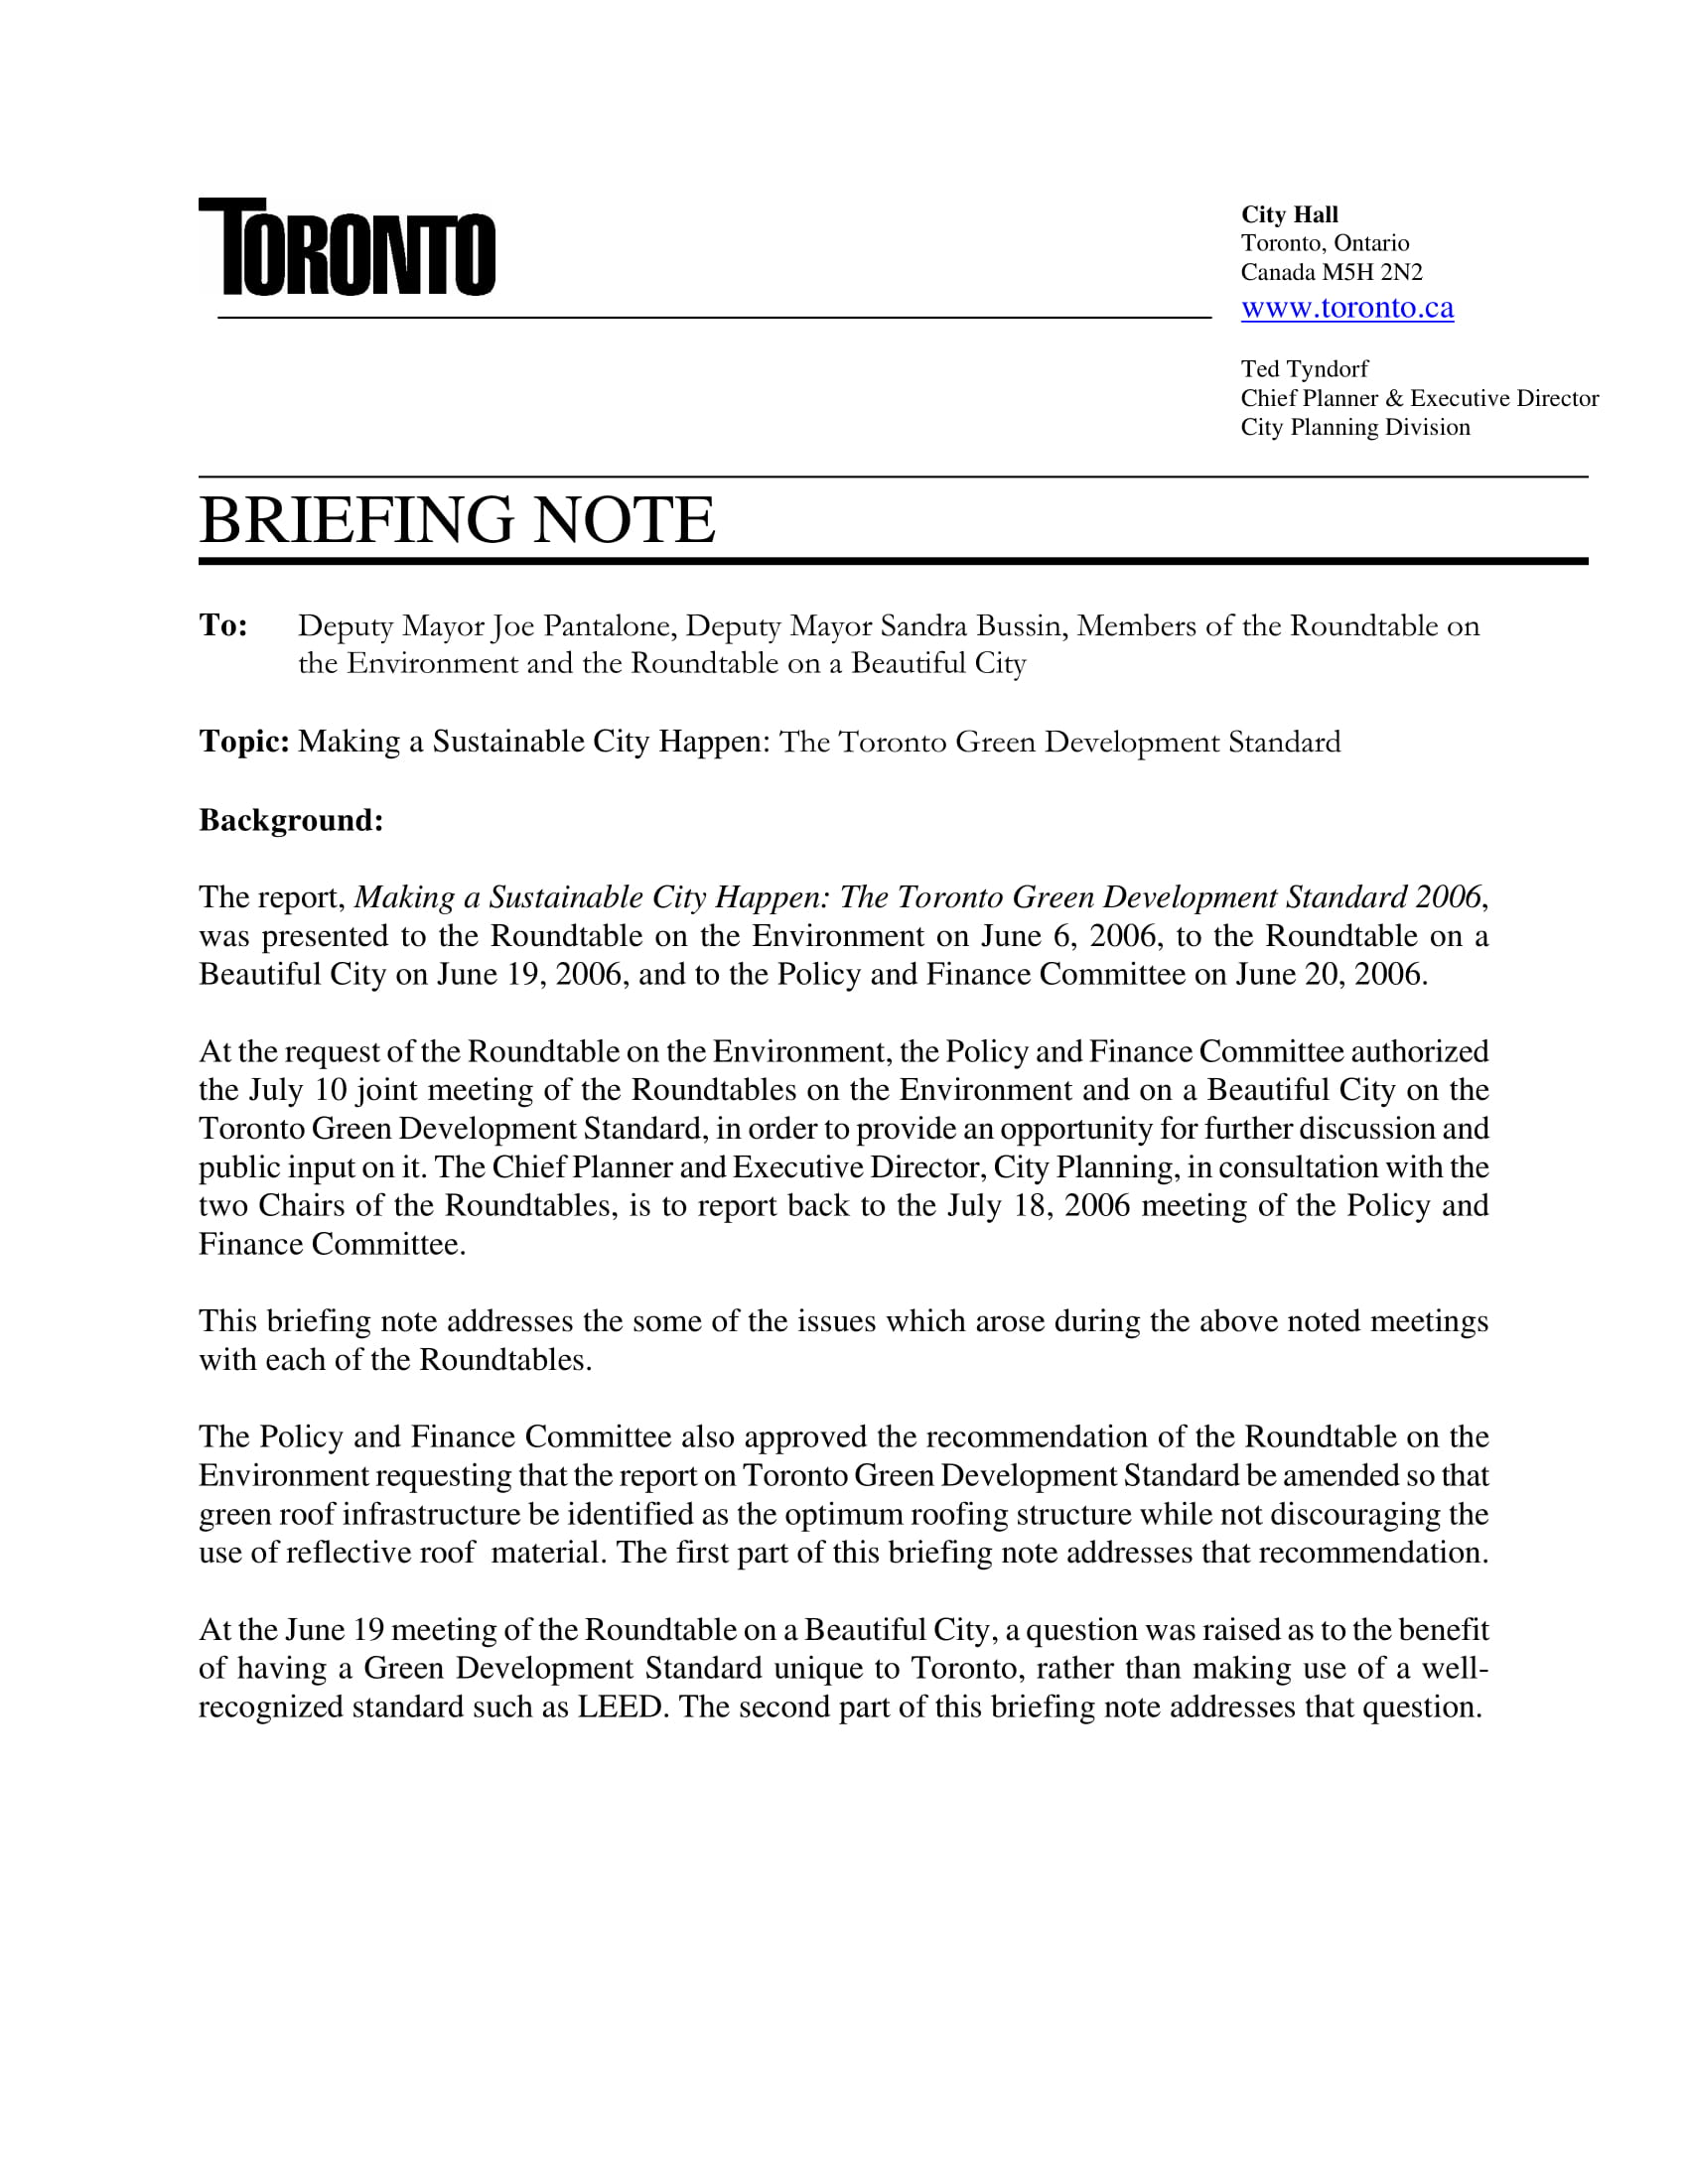 city hall briefing note example